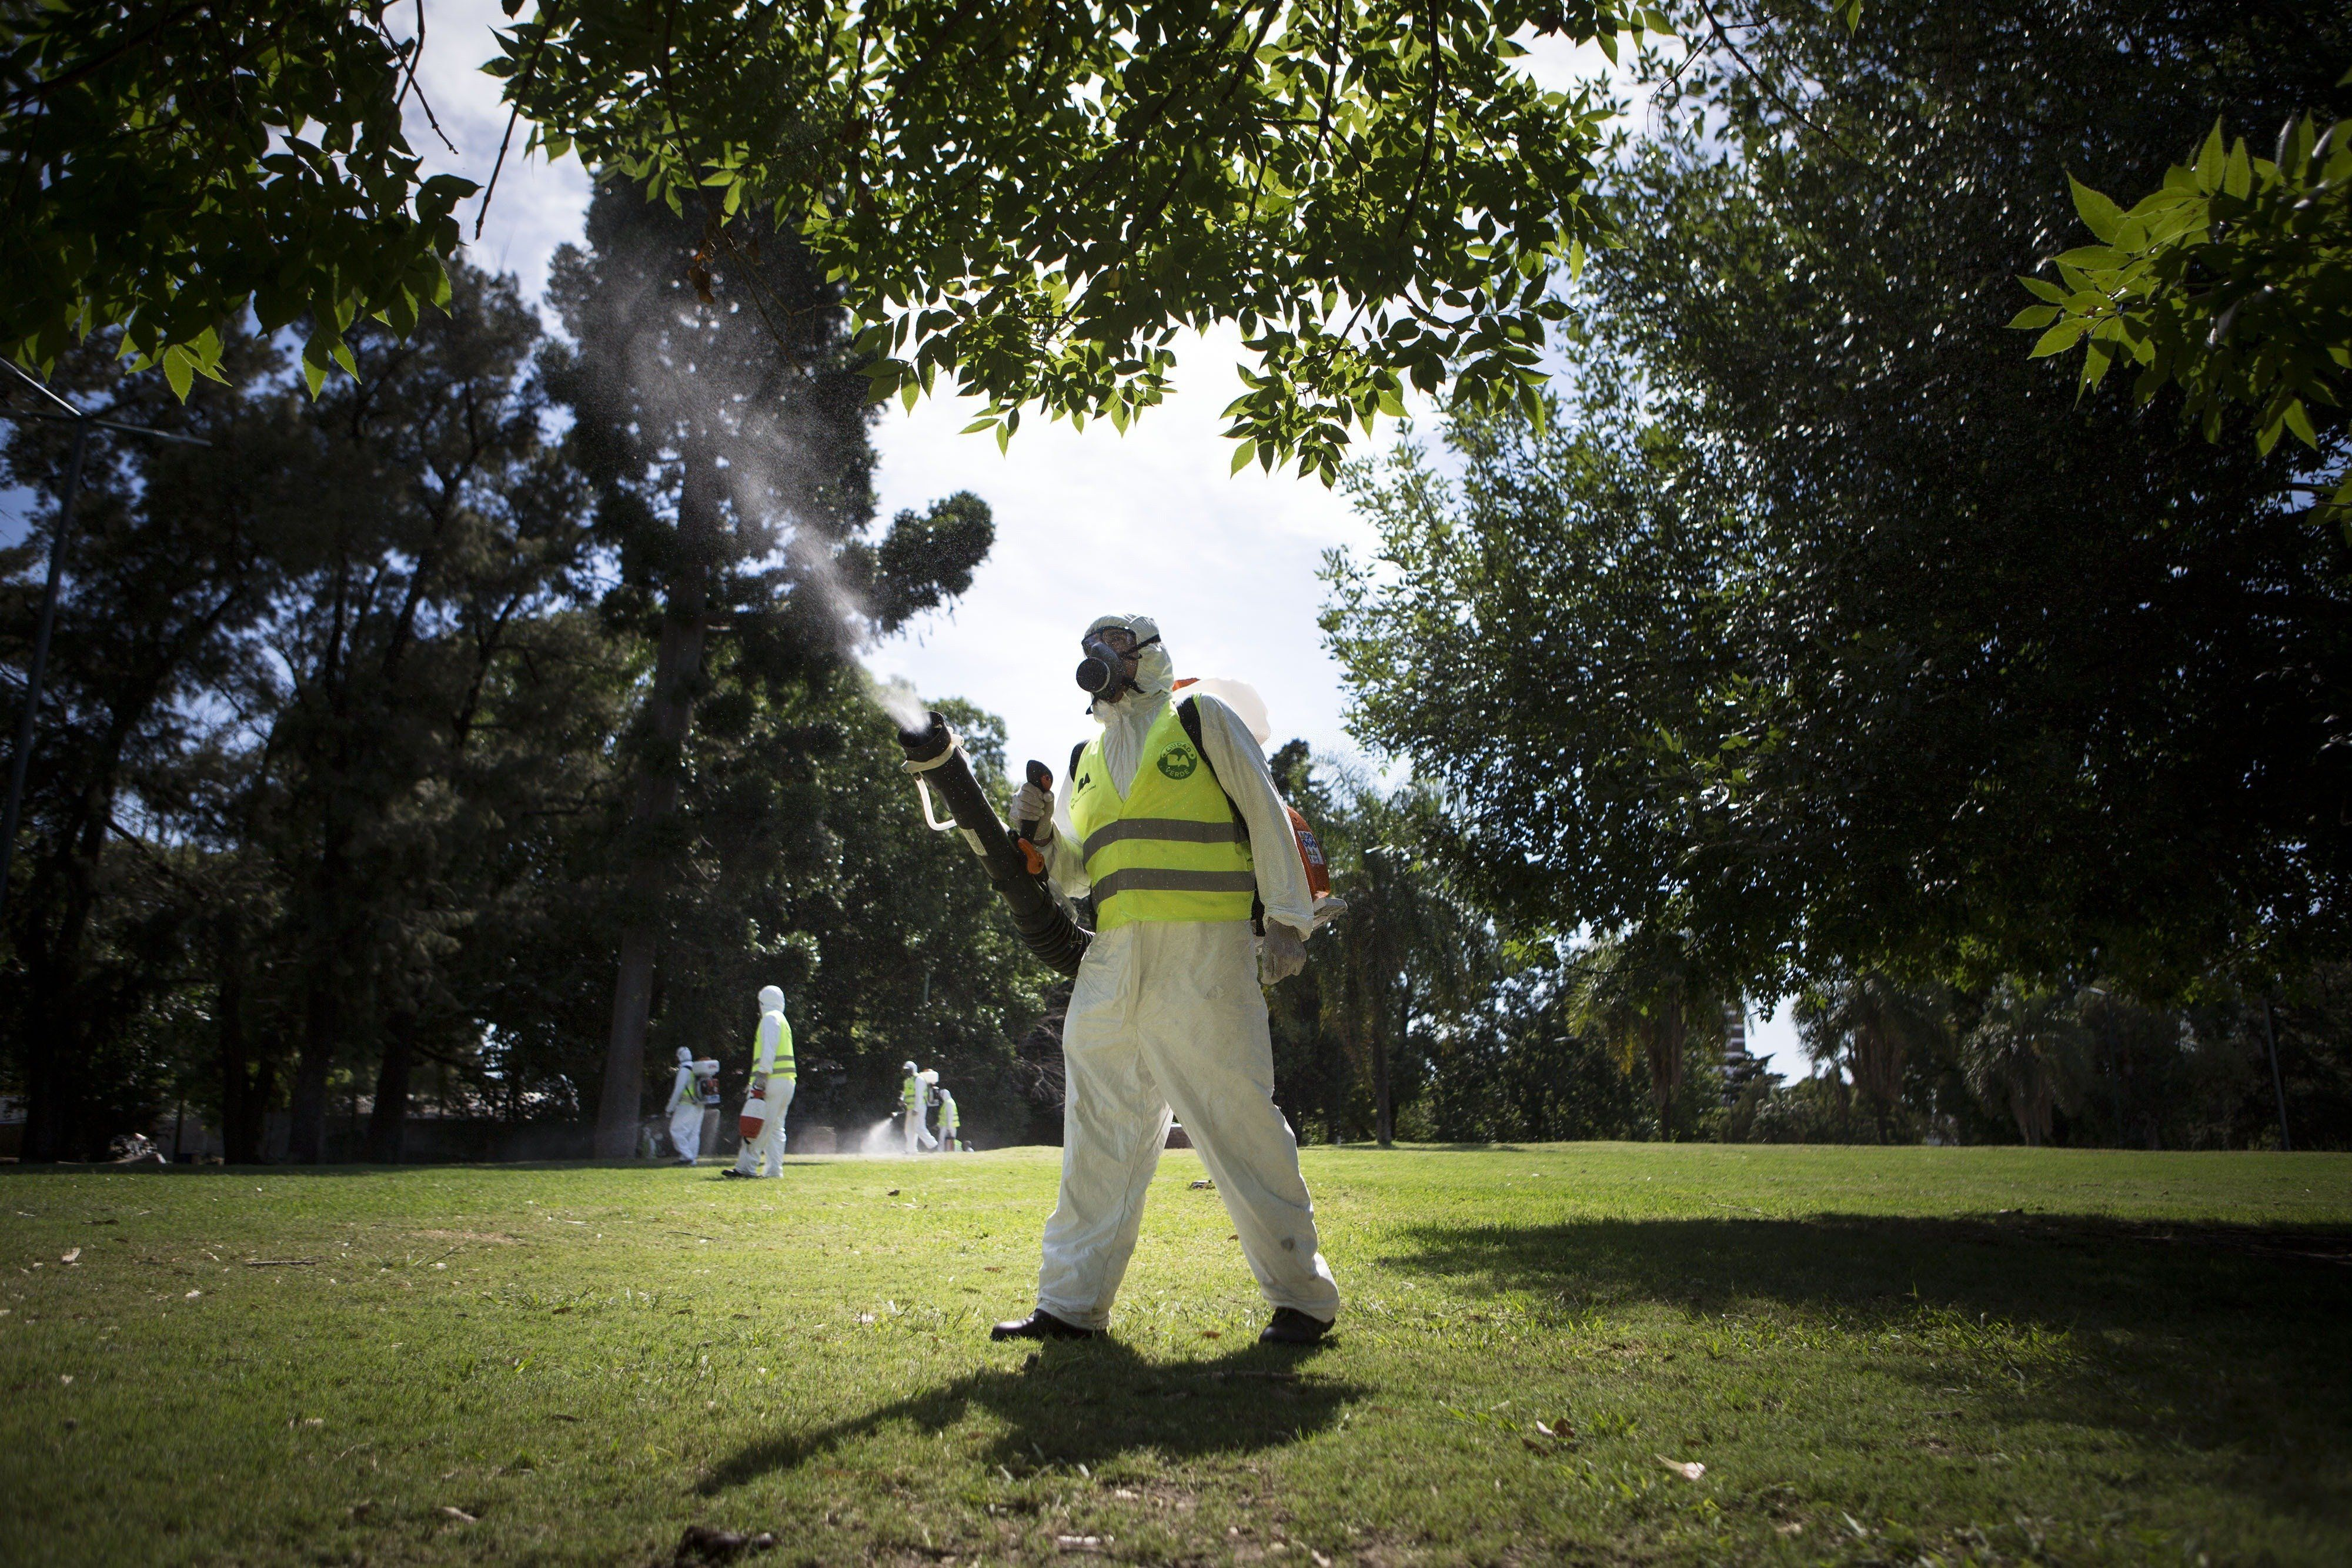 Argentina's Environment and Public Space Ministry fumigation brigade members spay insecticide in an area of Saavedra Park, in an effort to control the Aedes aegypti mosquito, in Buenos Aires on Feb. 11, 2016.